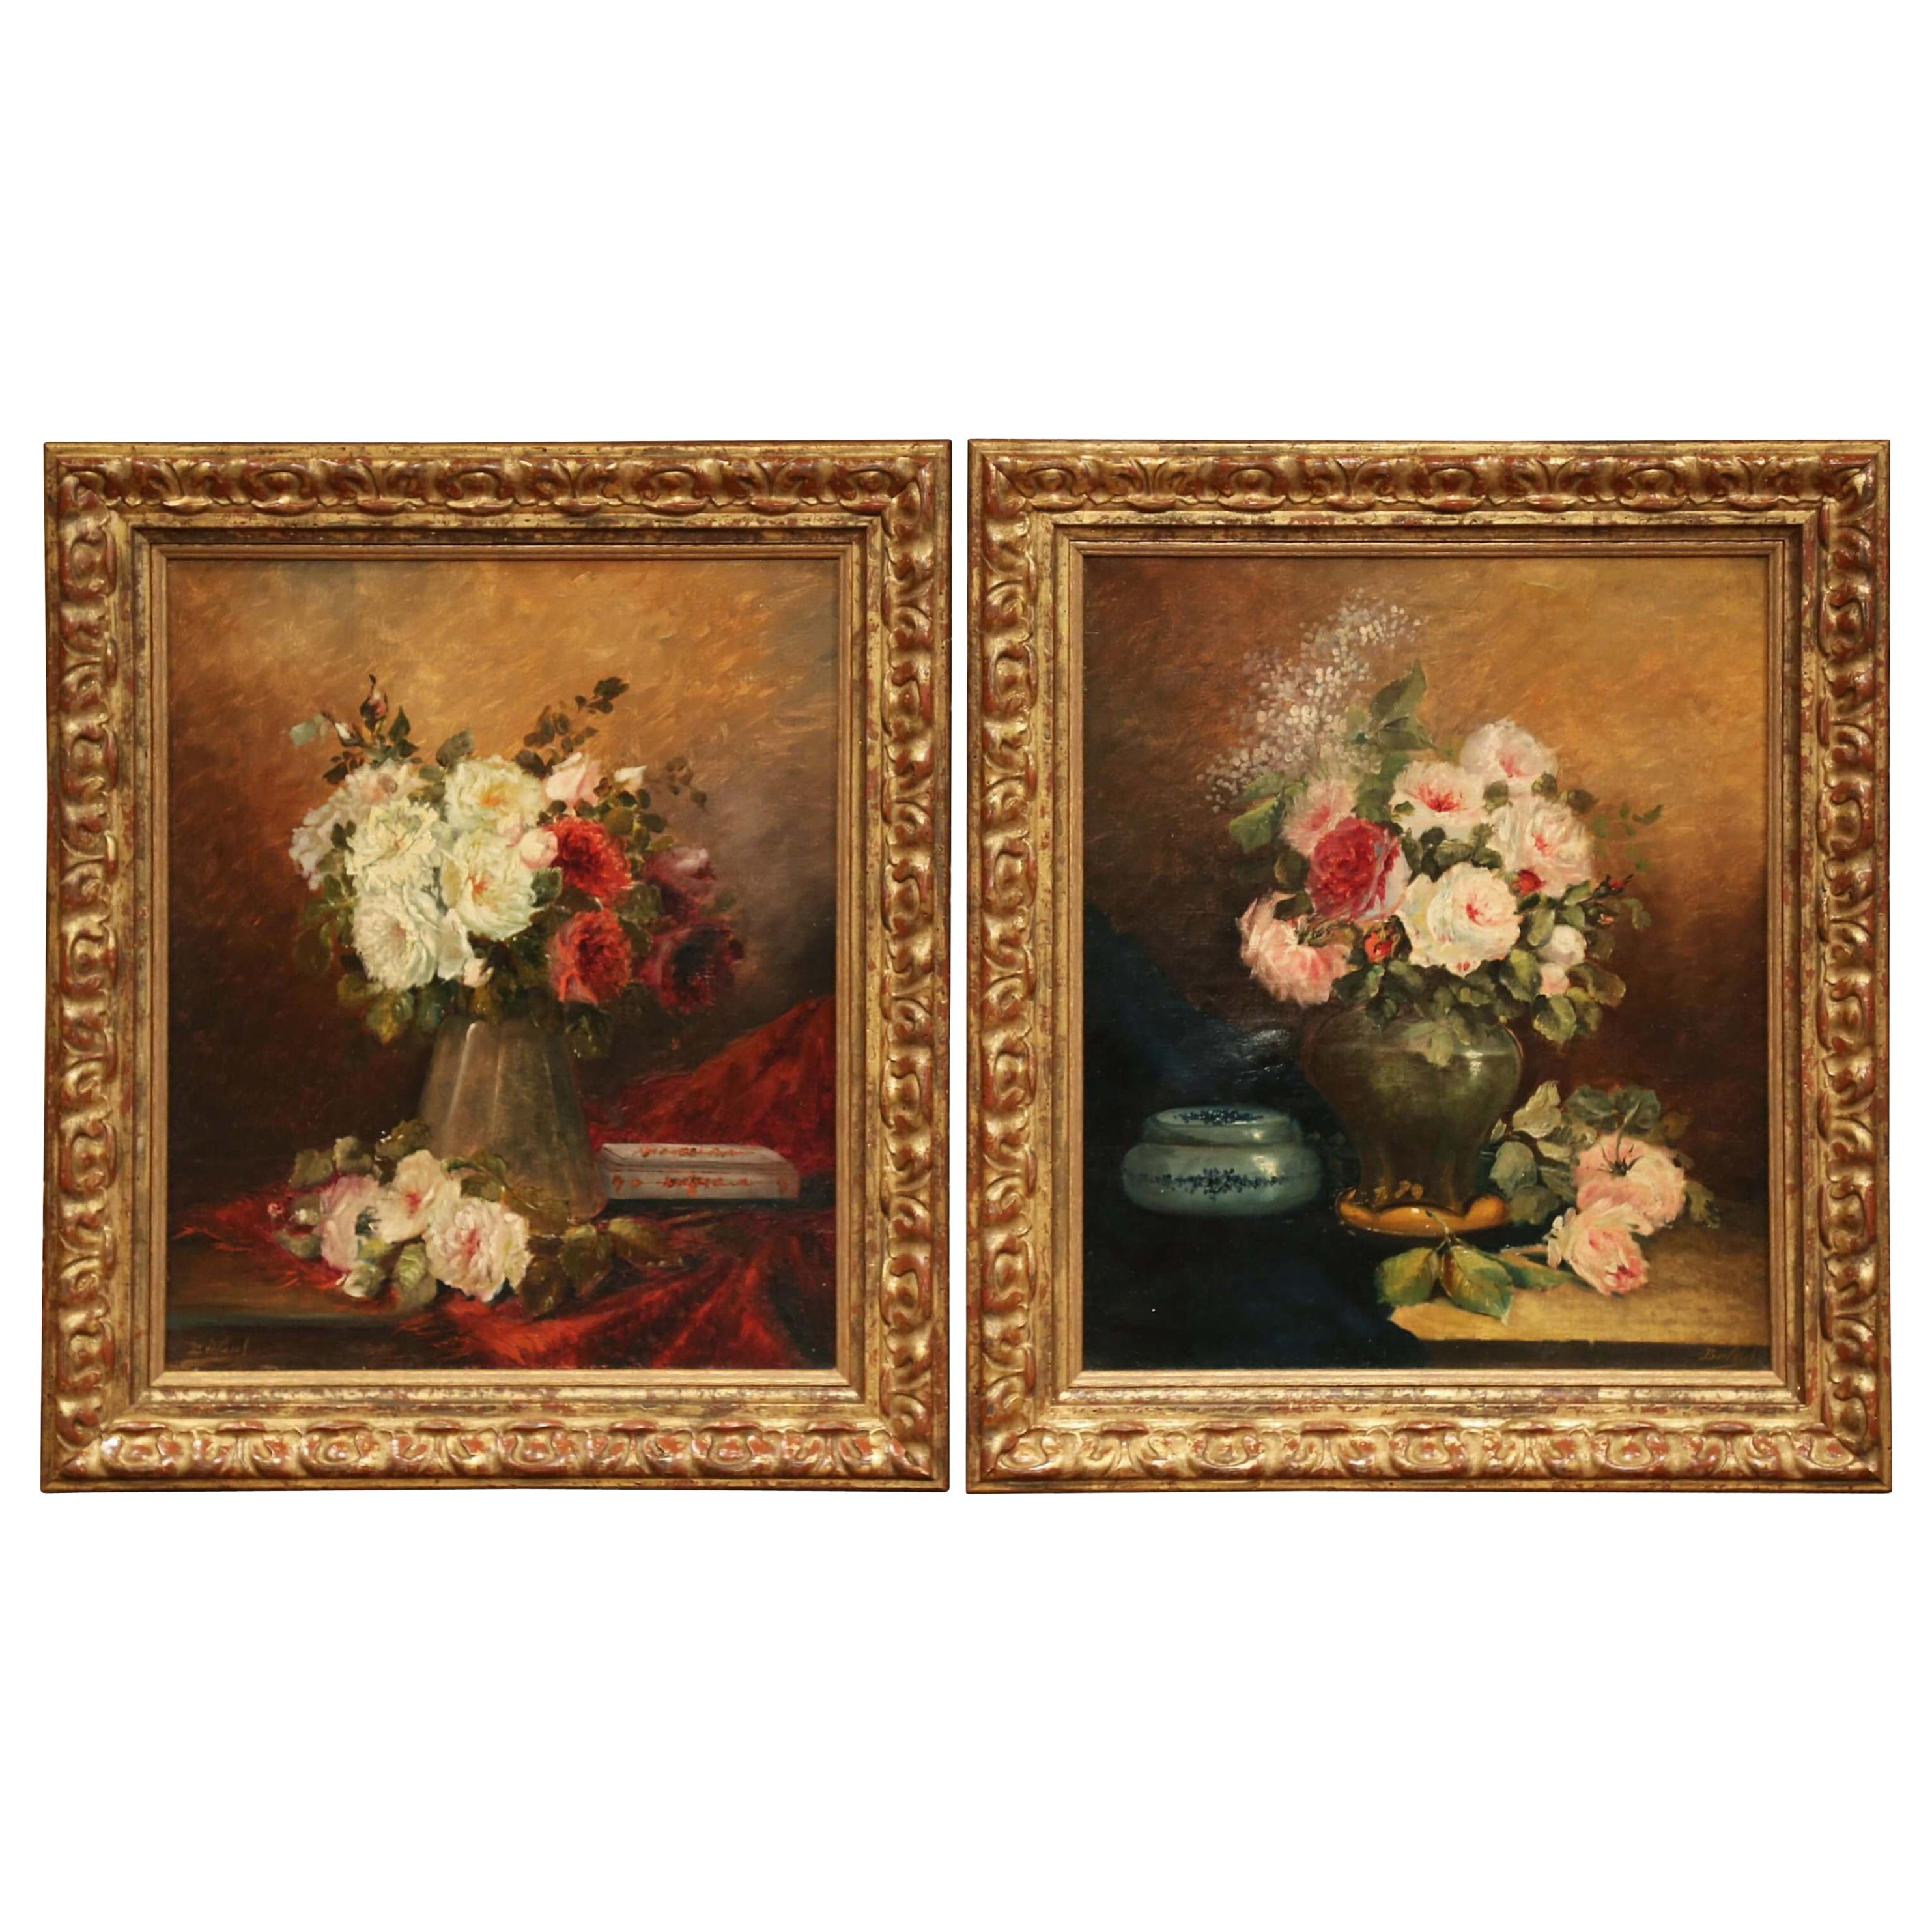 Pair of 19th Century French Still Life Flower Paintings in Gilt Frames Signed